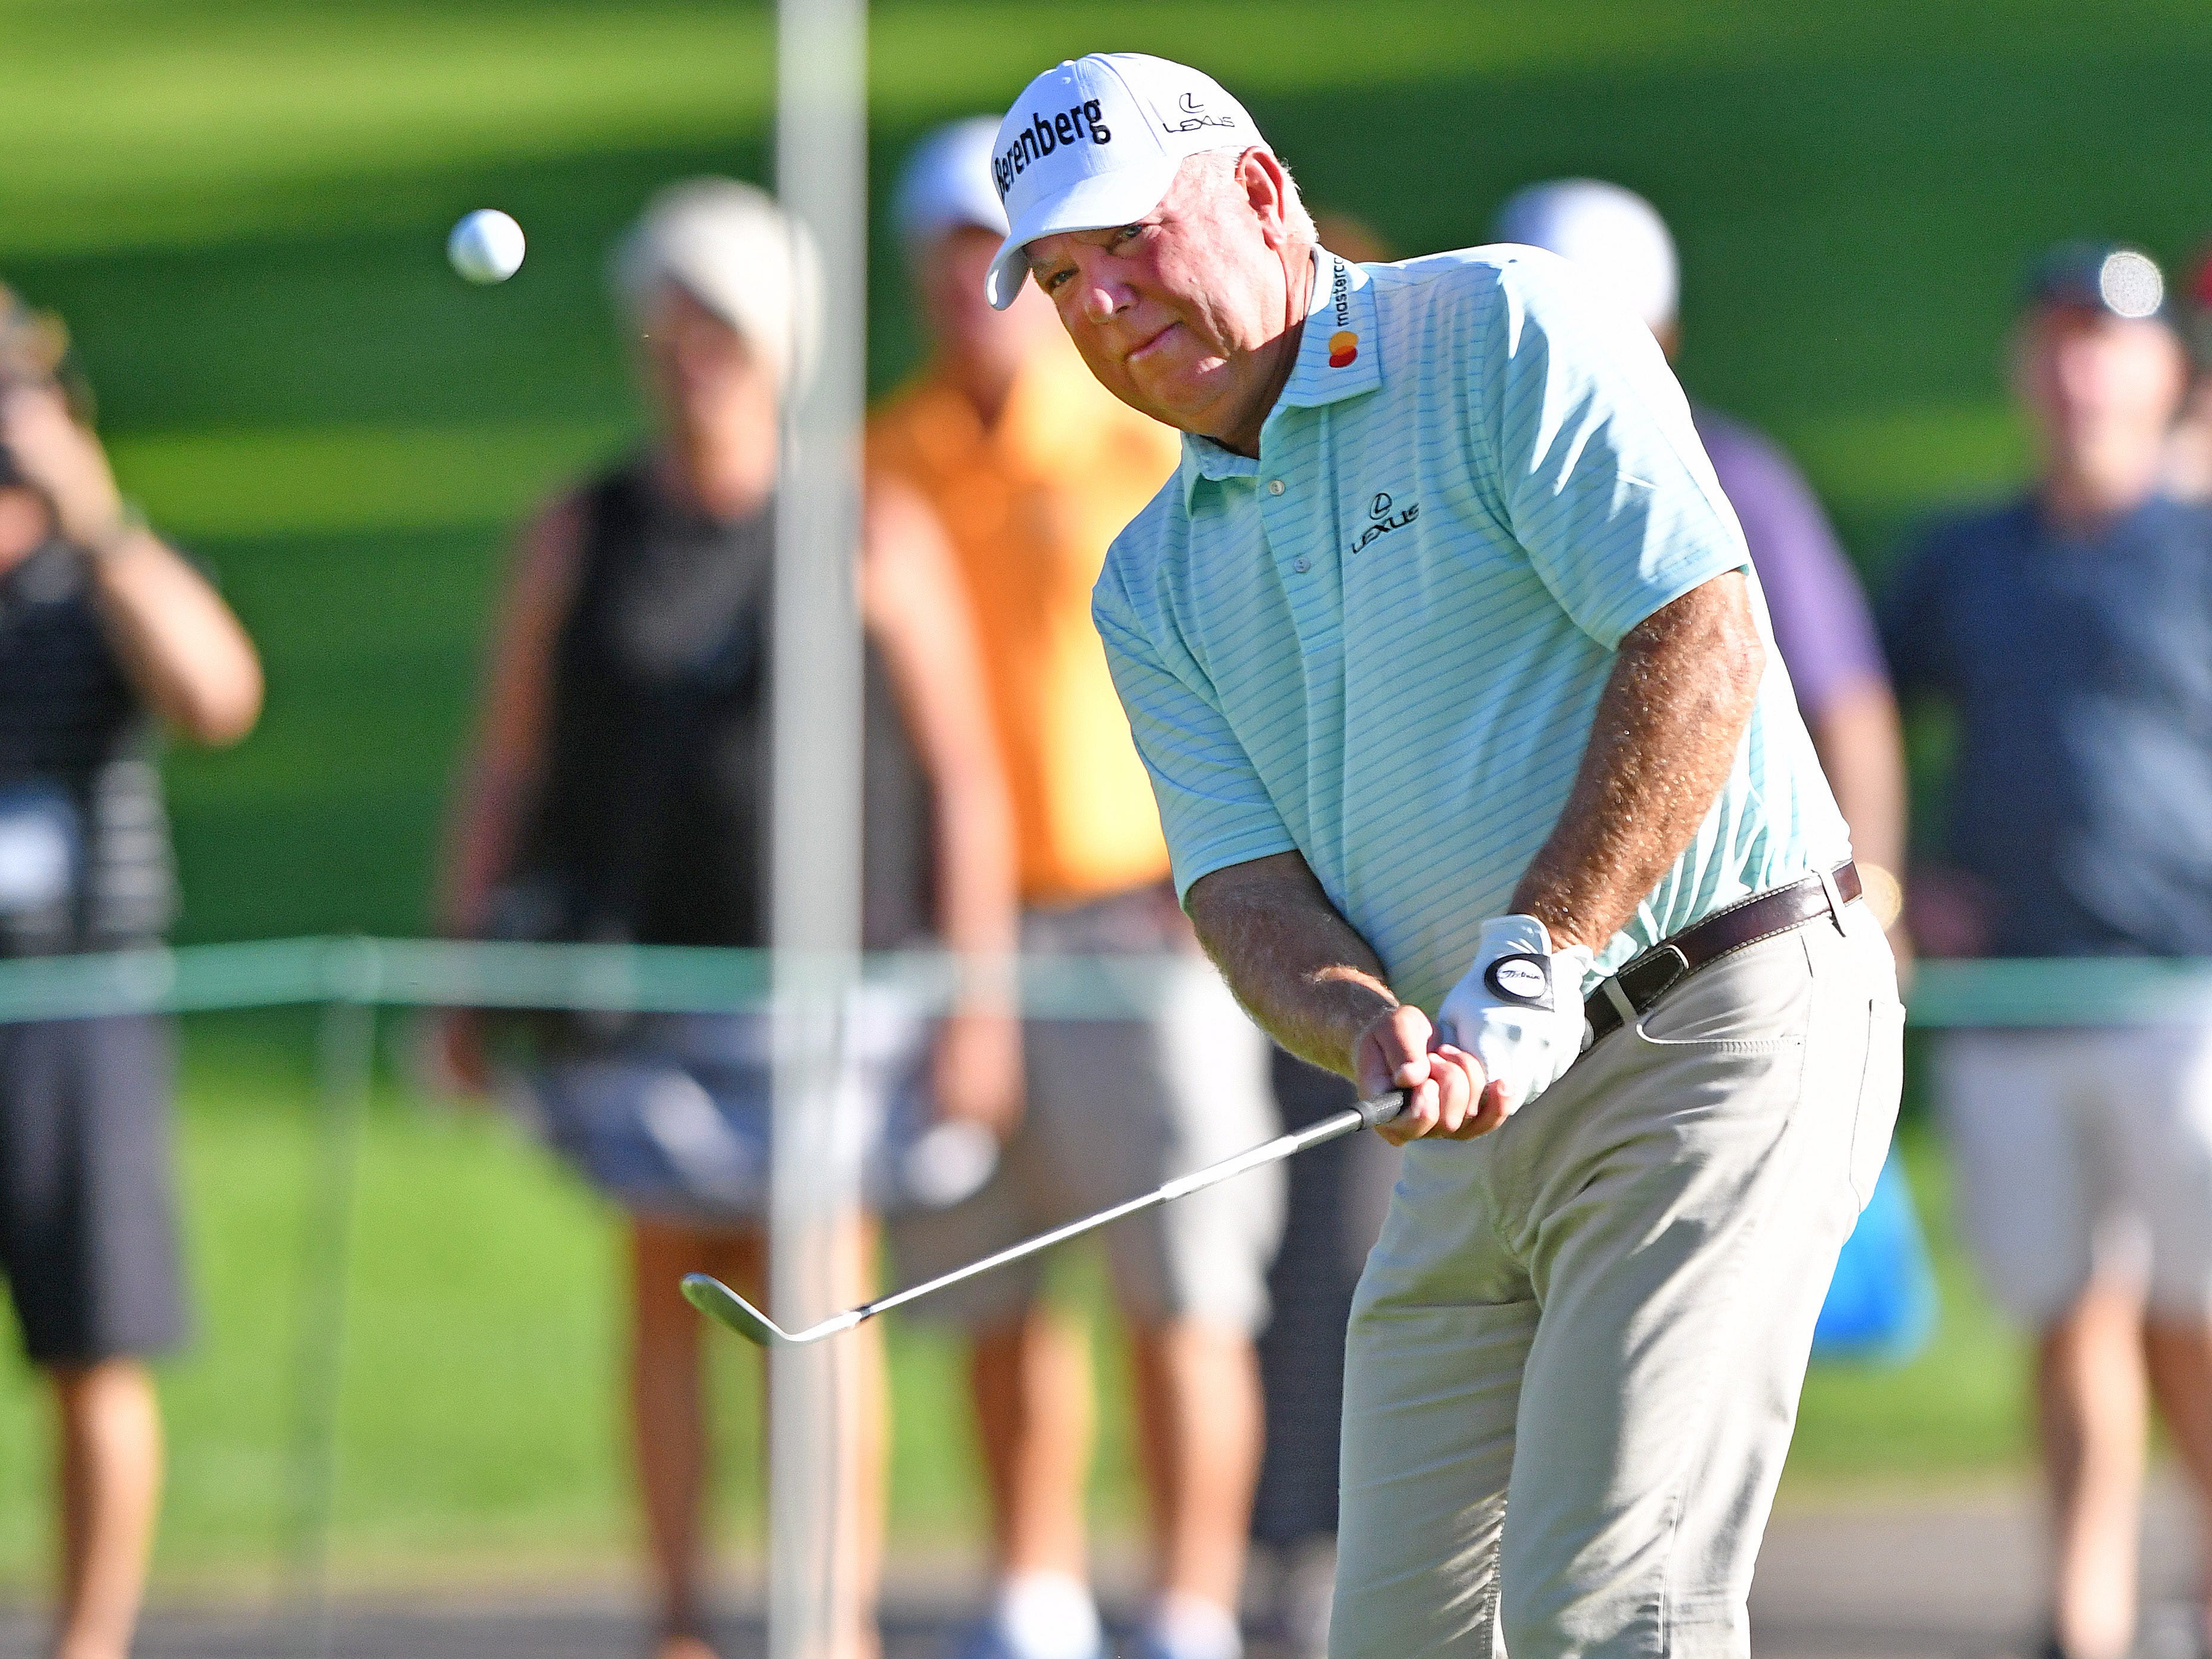 Mark O'Meara hits a chip shot on the 17th hole that rolls up next to it, but won't fall.